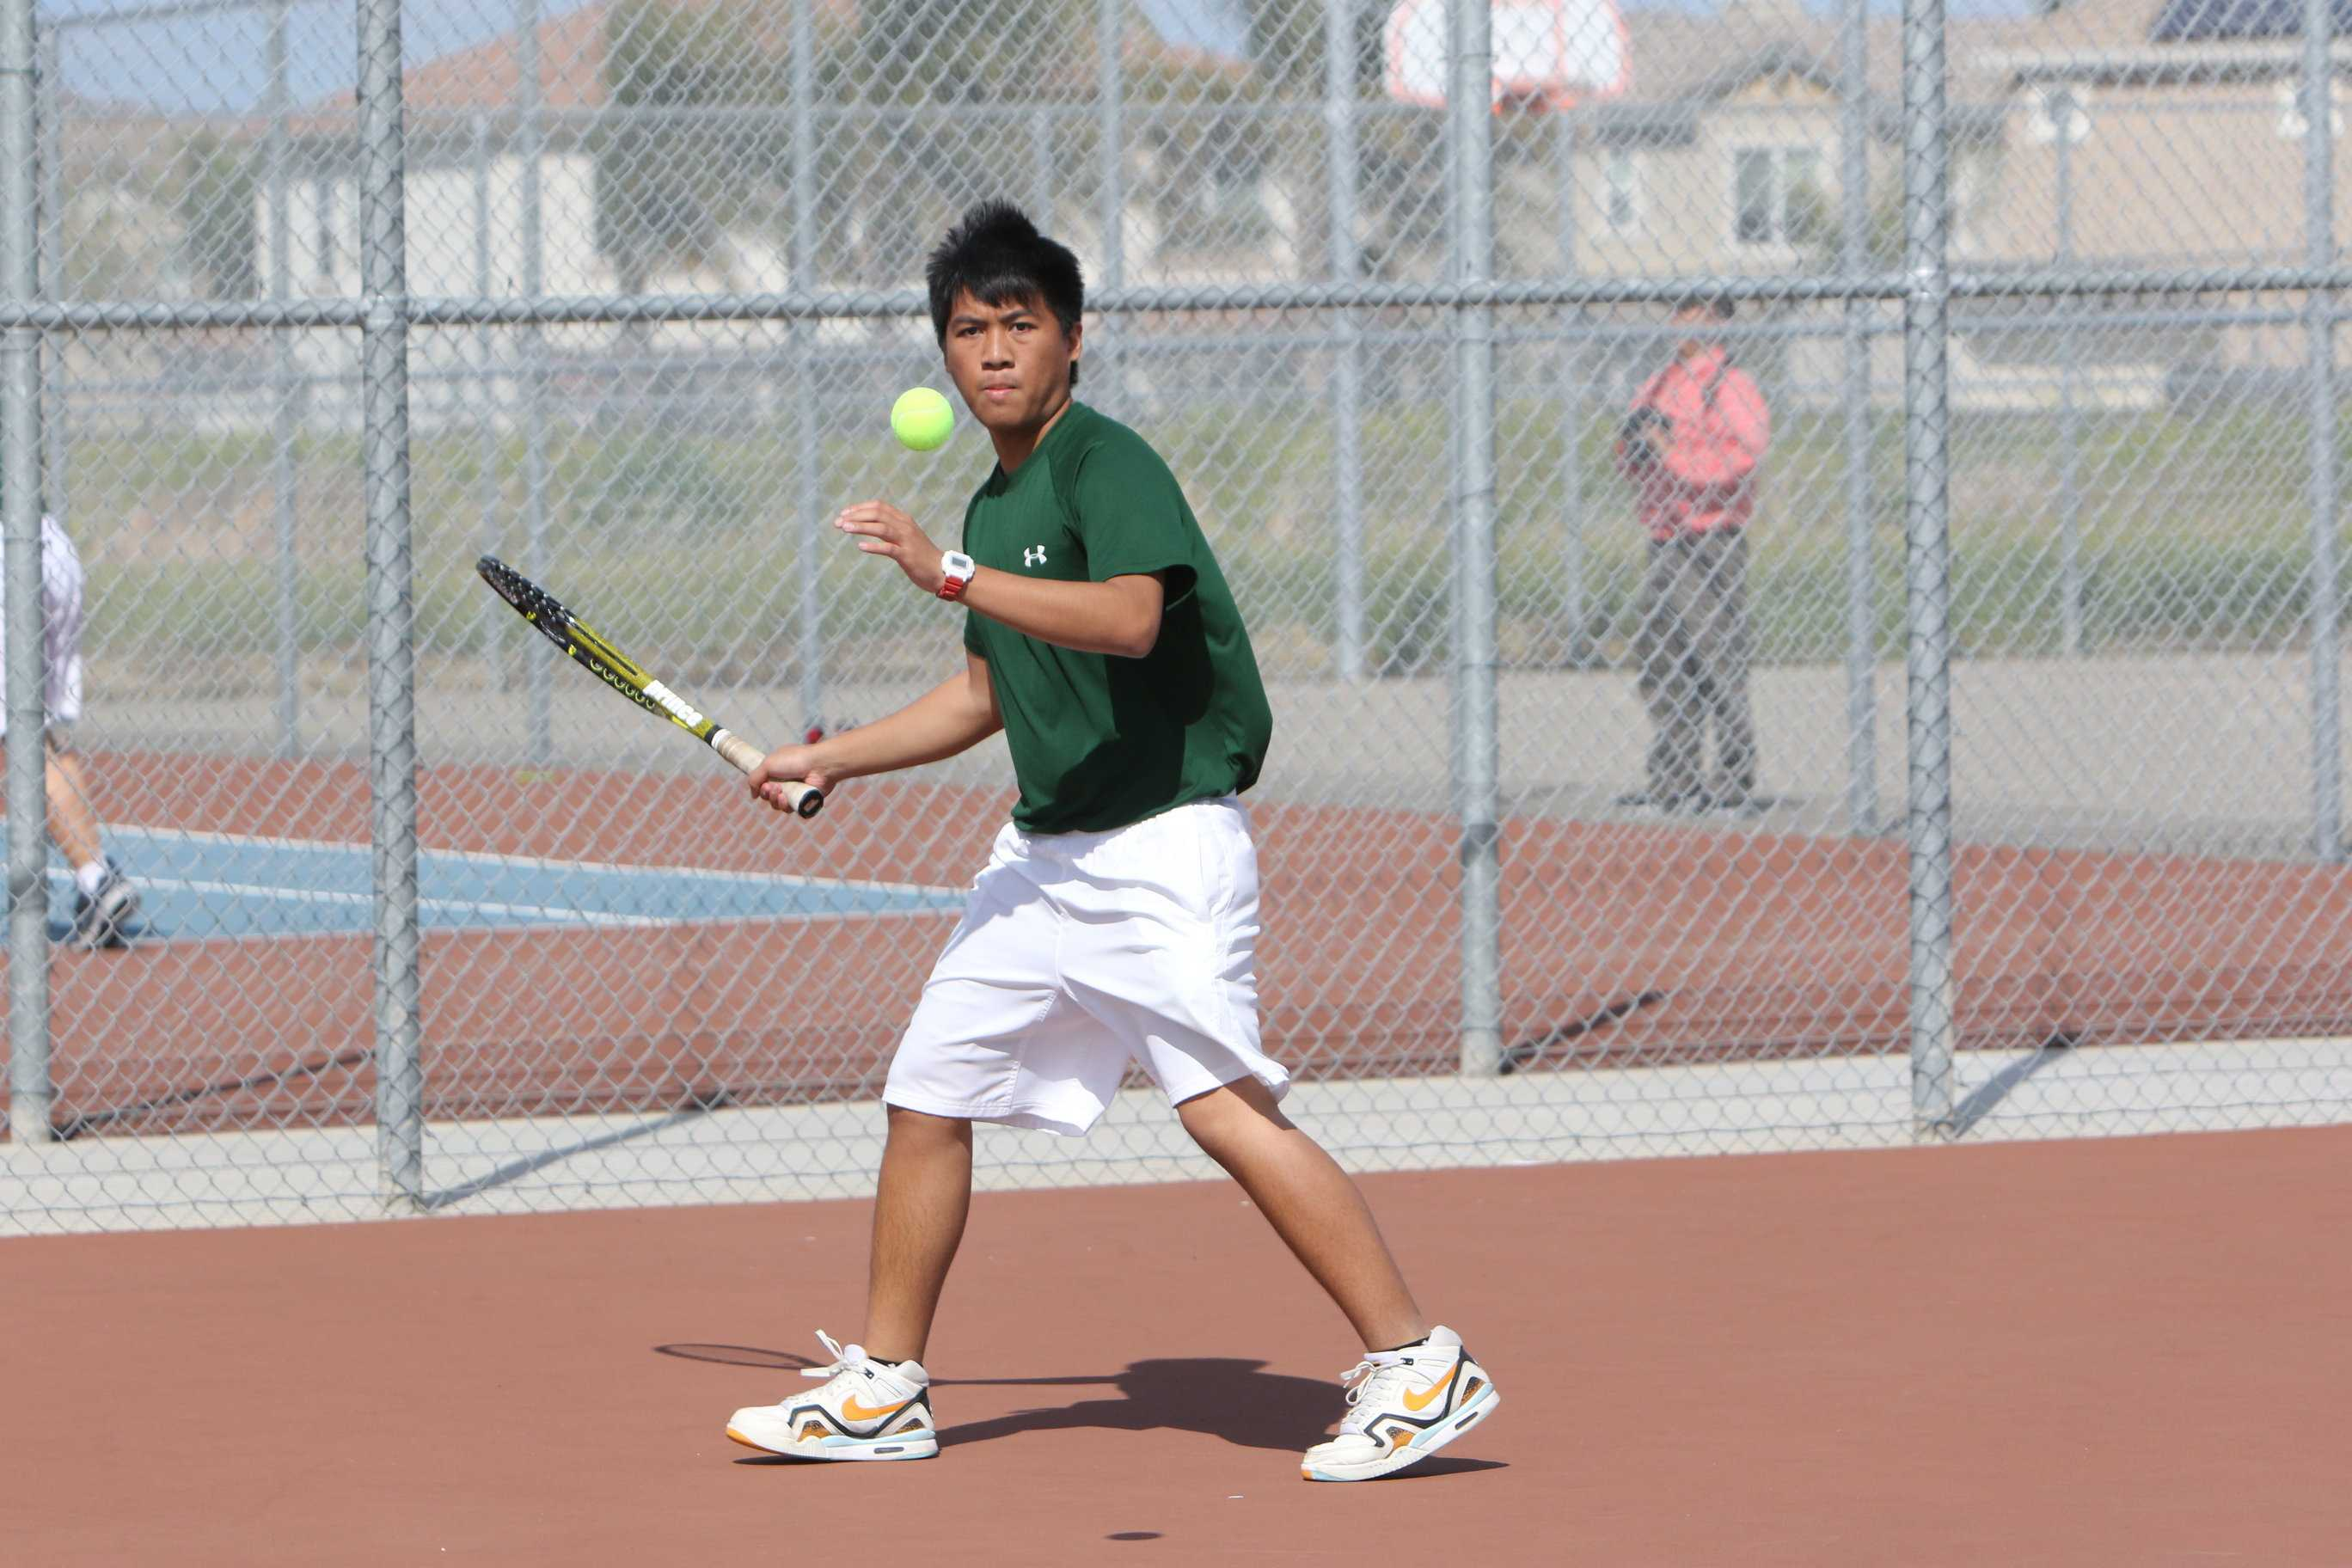 Senior Jeane Taruc gets ready to hit the ball back to Kimball's side of the court on Mar. 14.